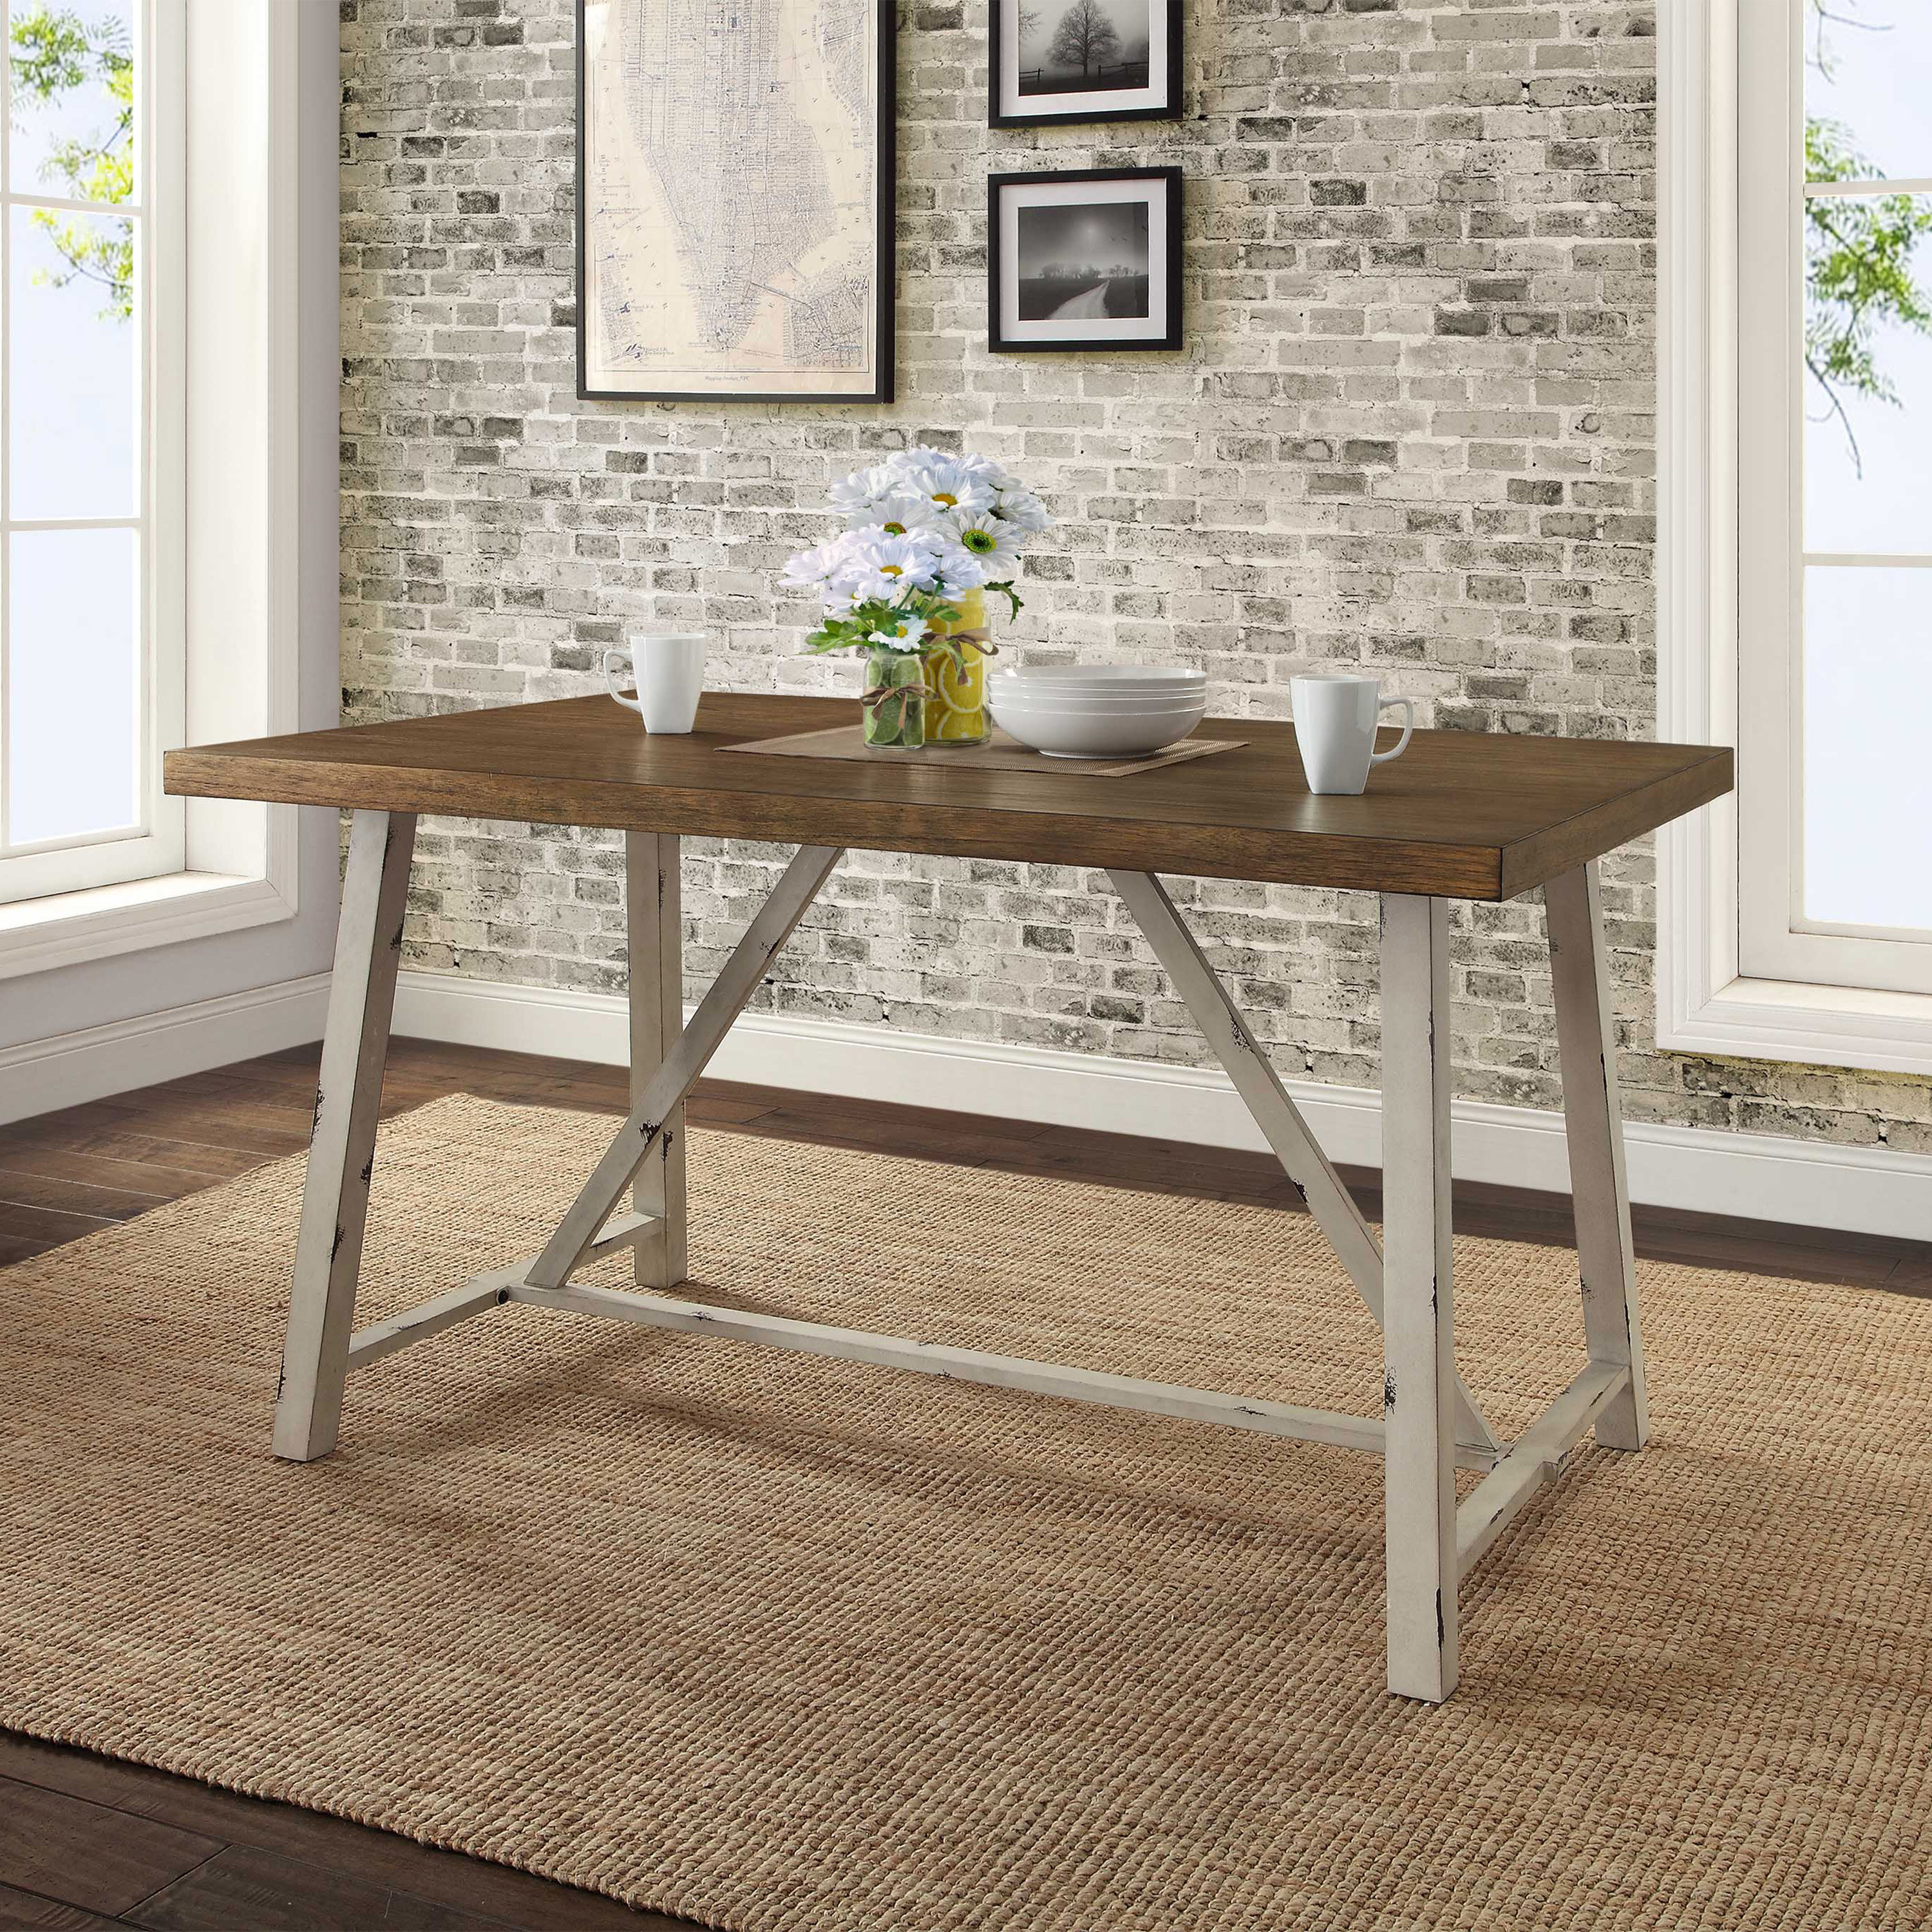 Wood and metal long dining table